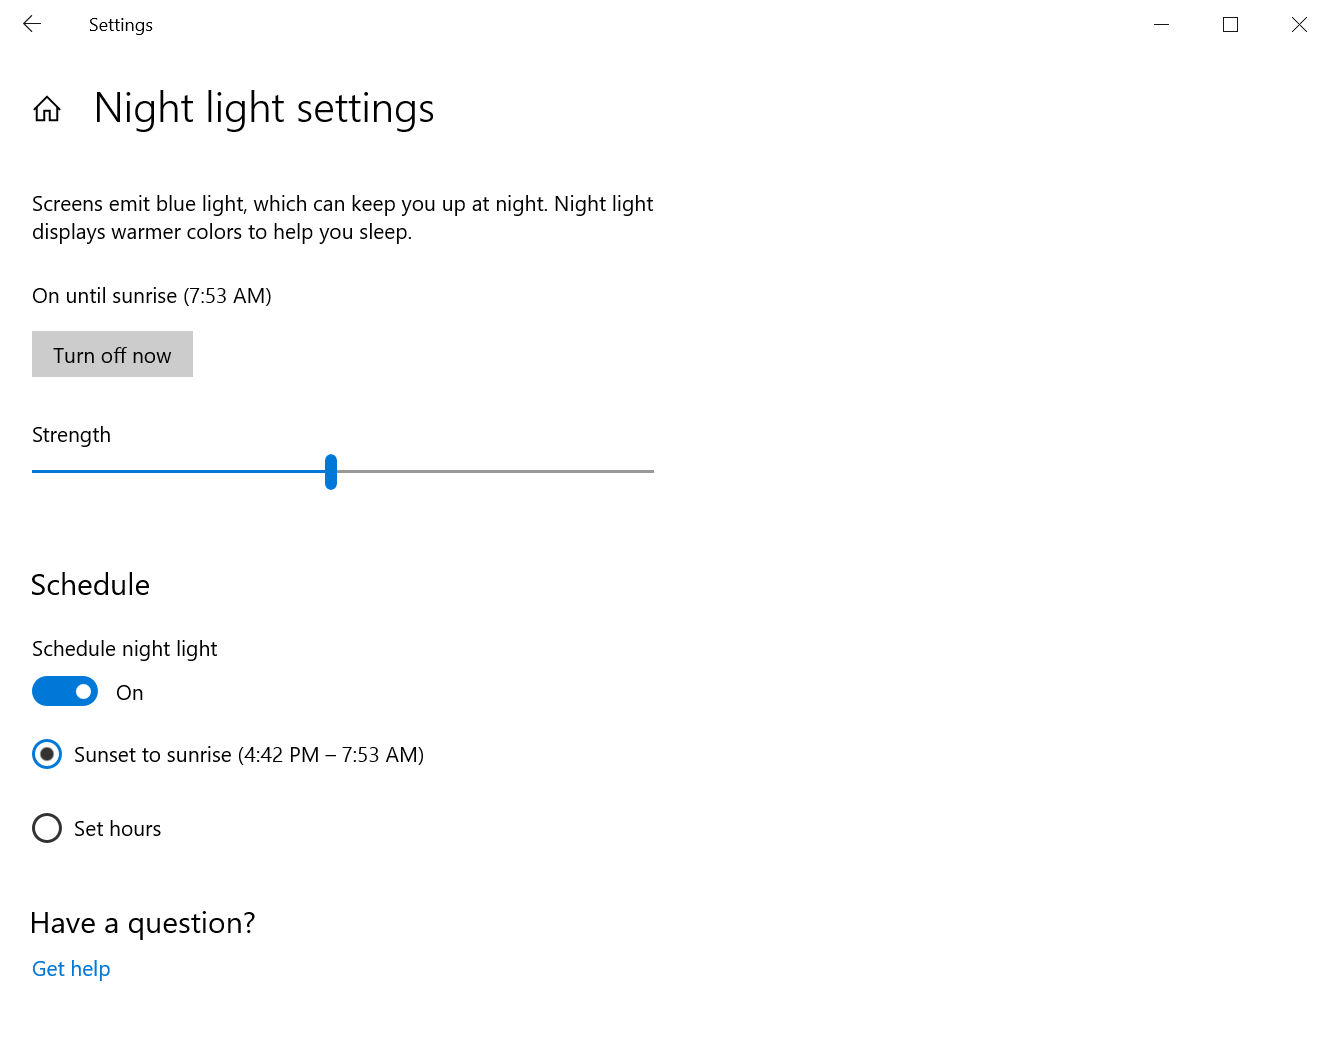 Using the night light settings to set its strength and schedule.